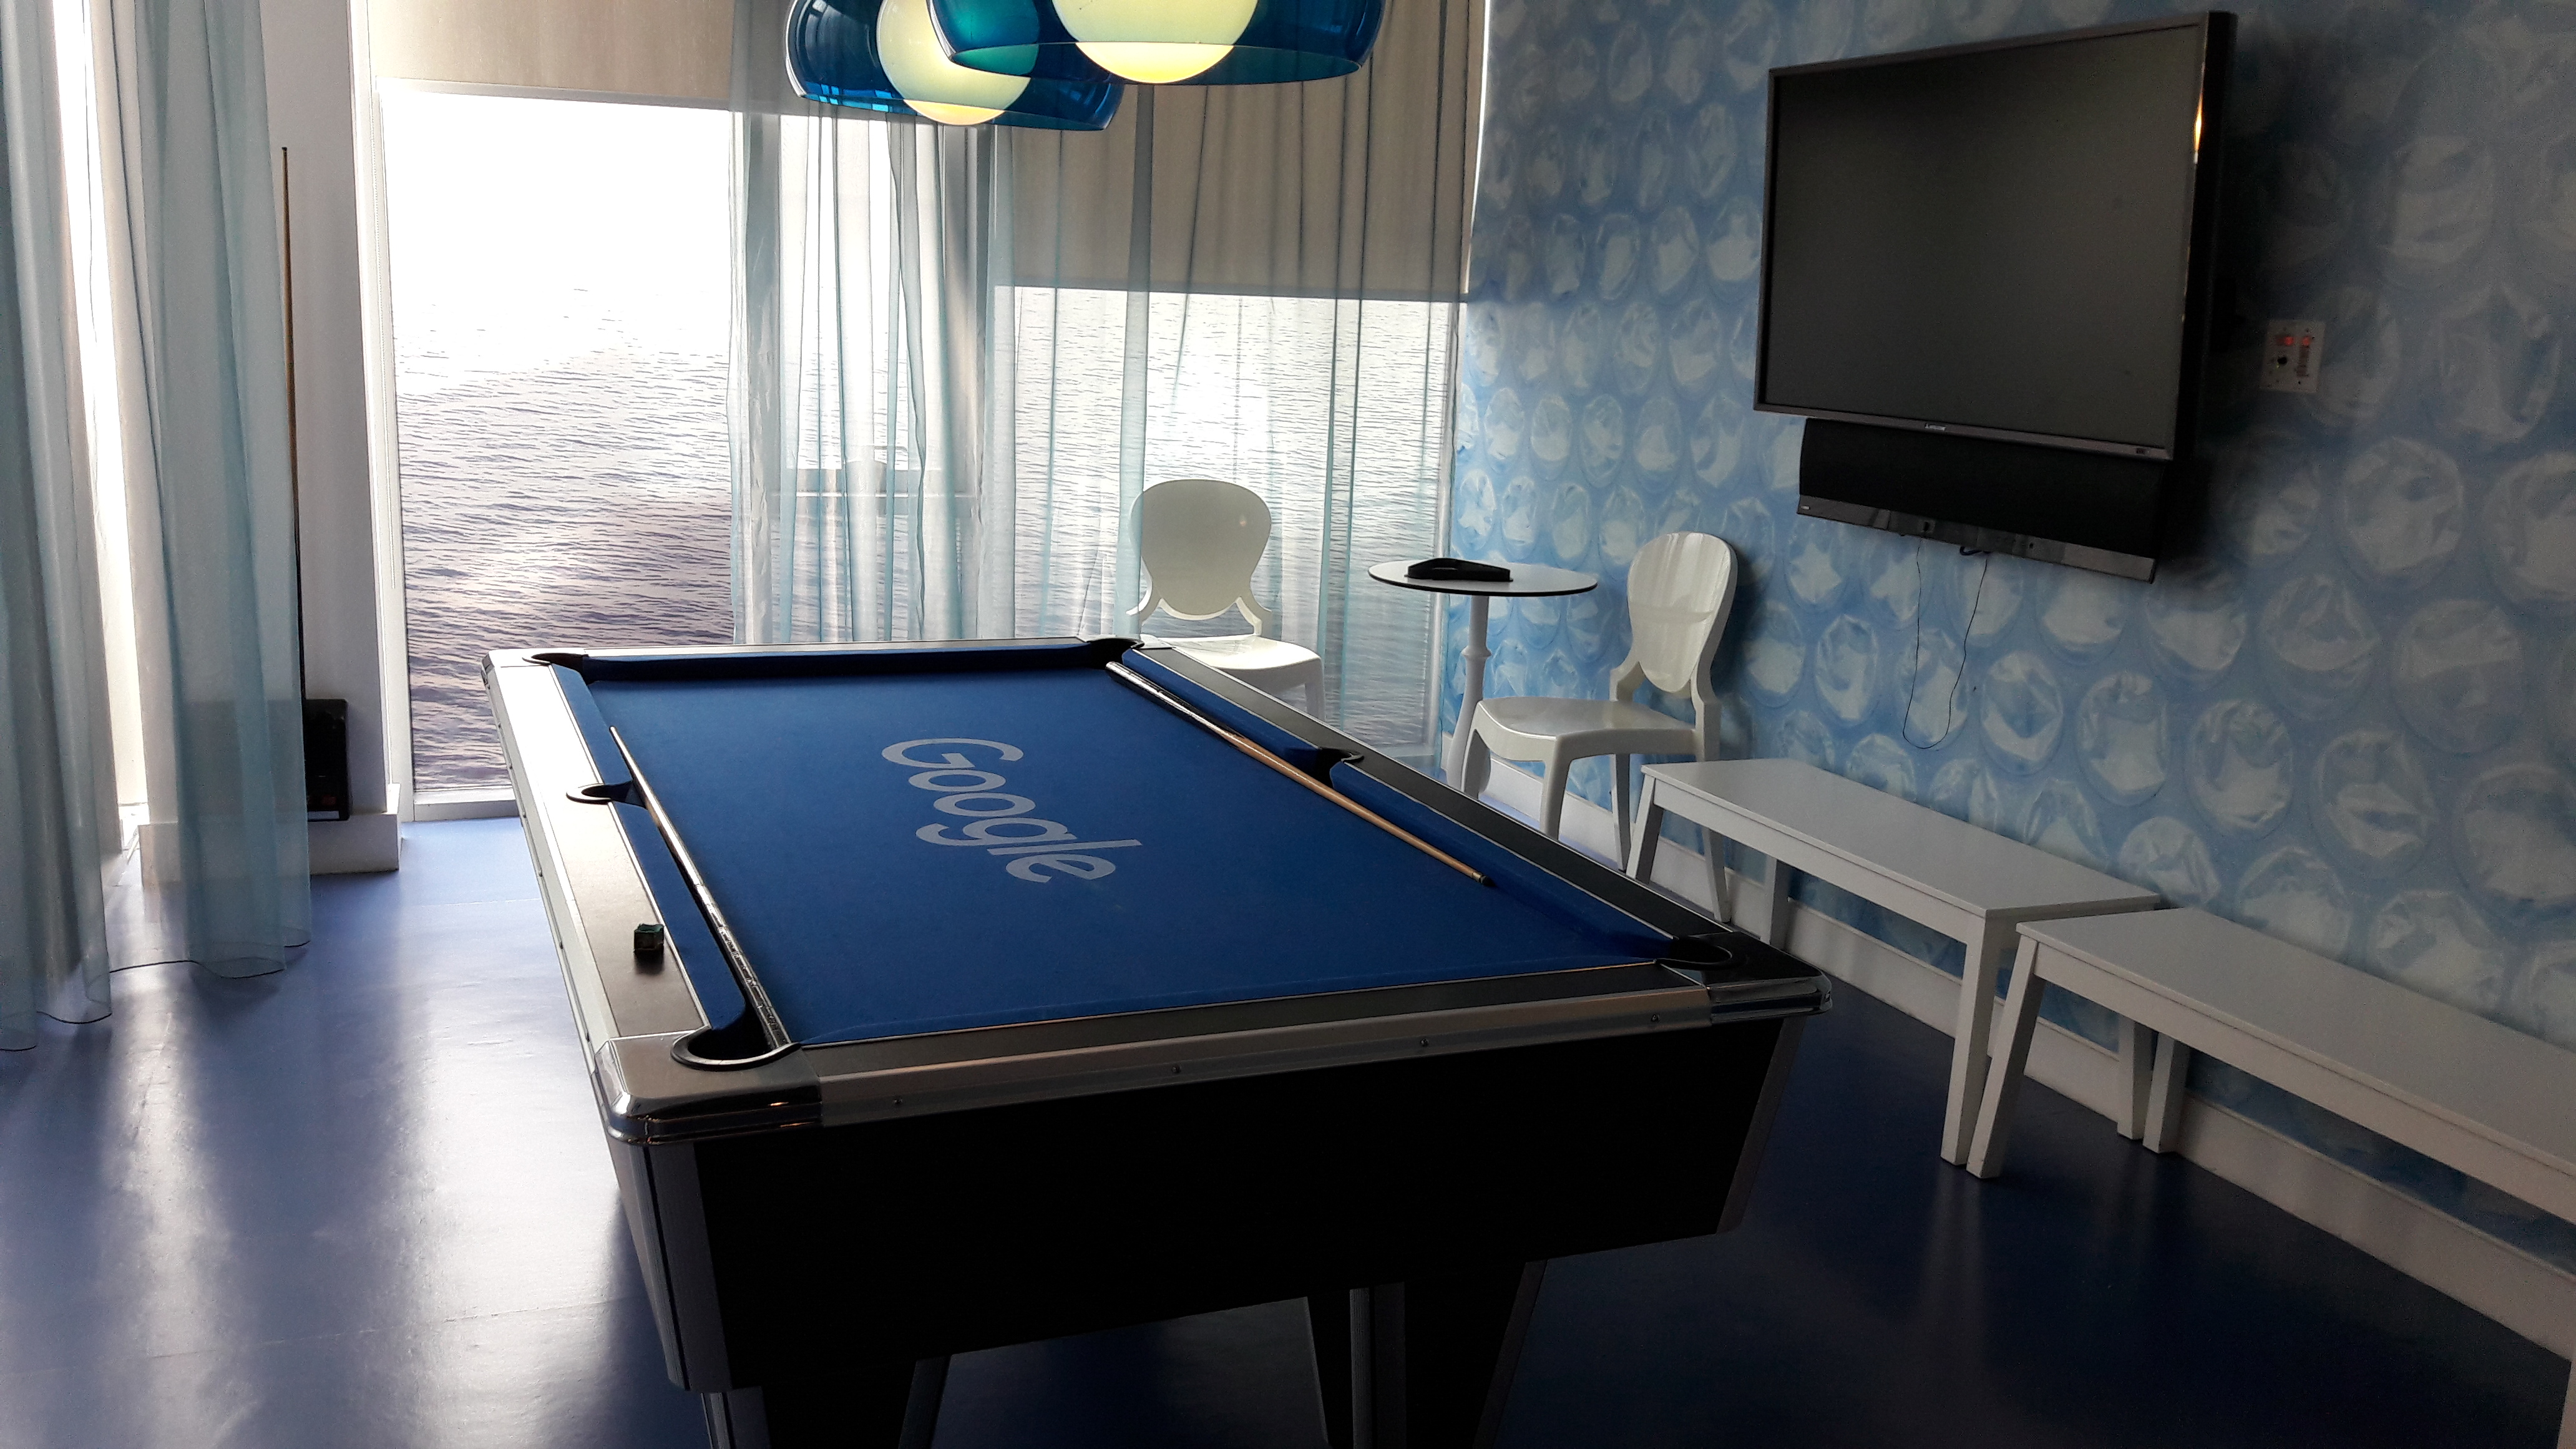 Google Billiardtisch